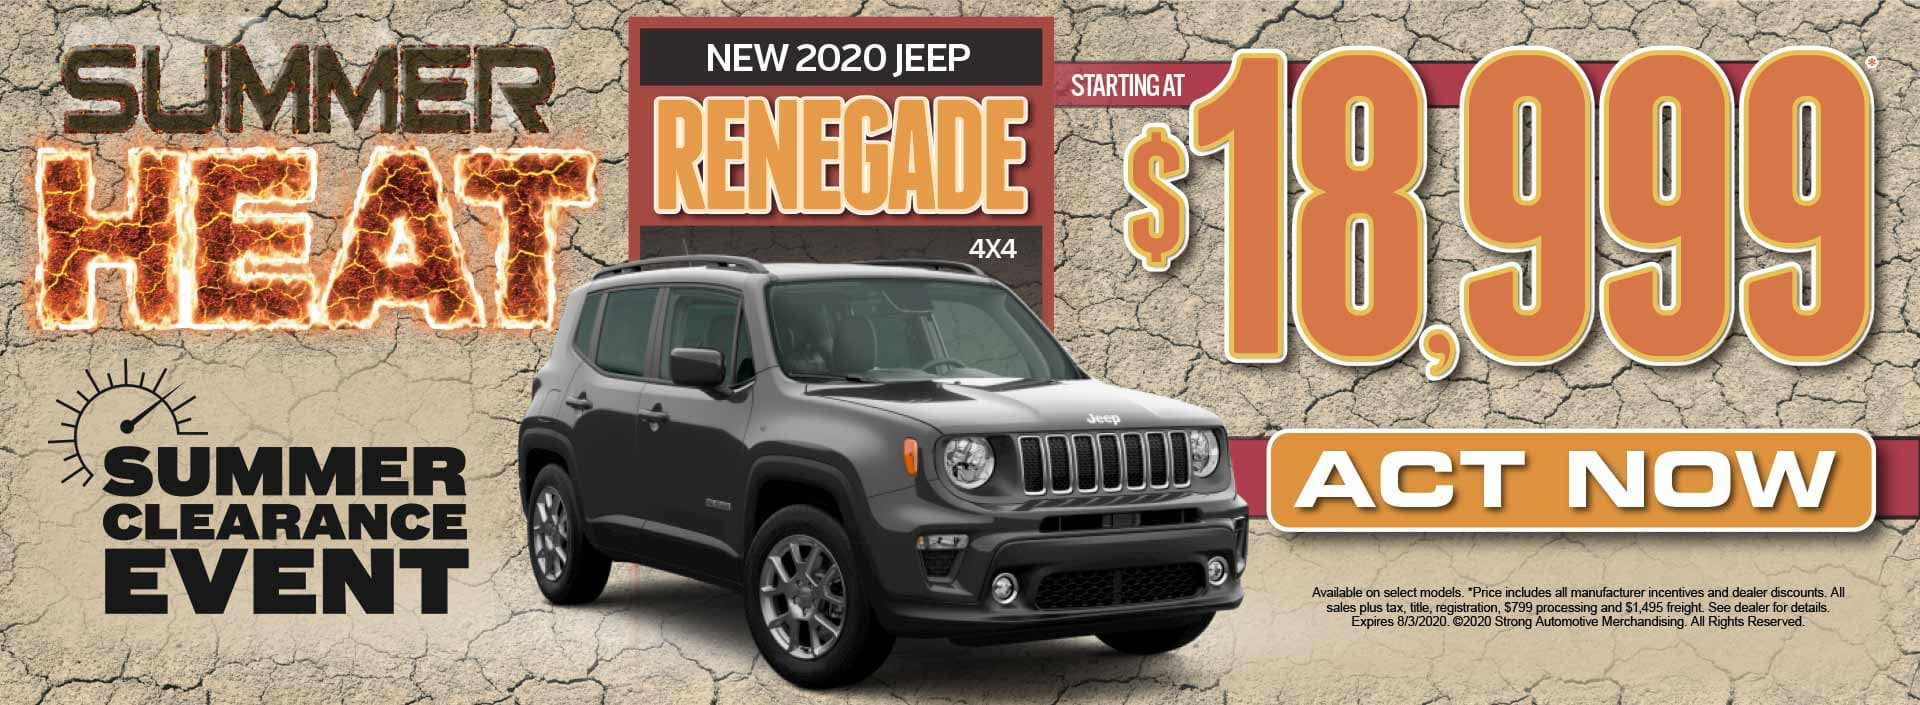 New 2020 Jeep Renegade Starting at $18,999* Act Now